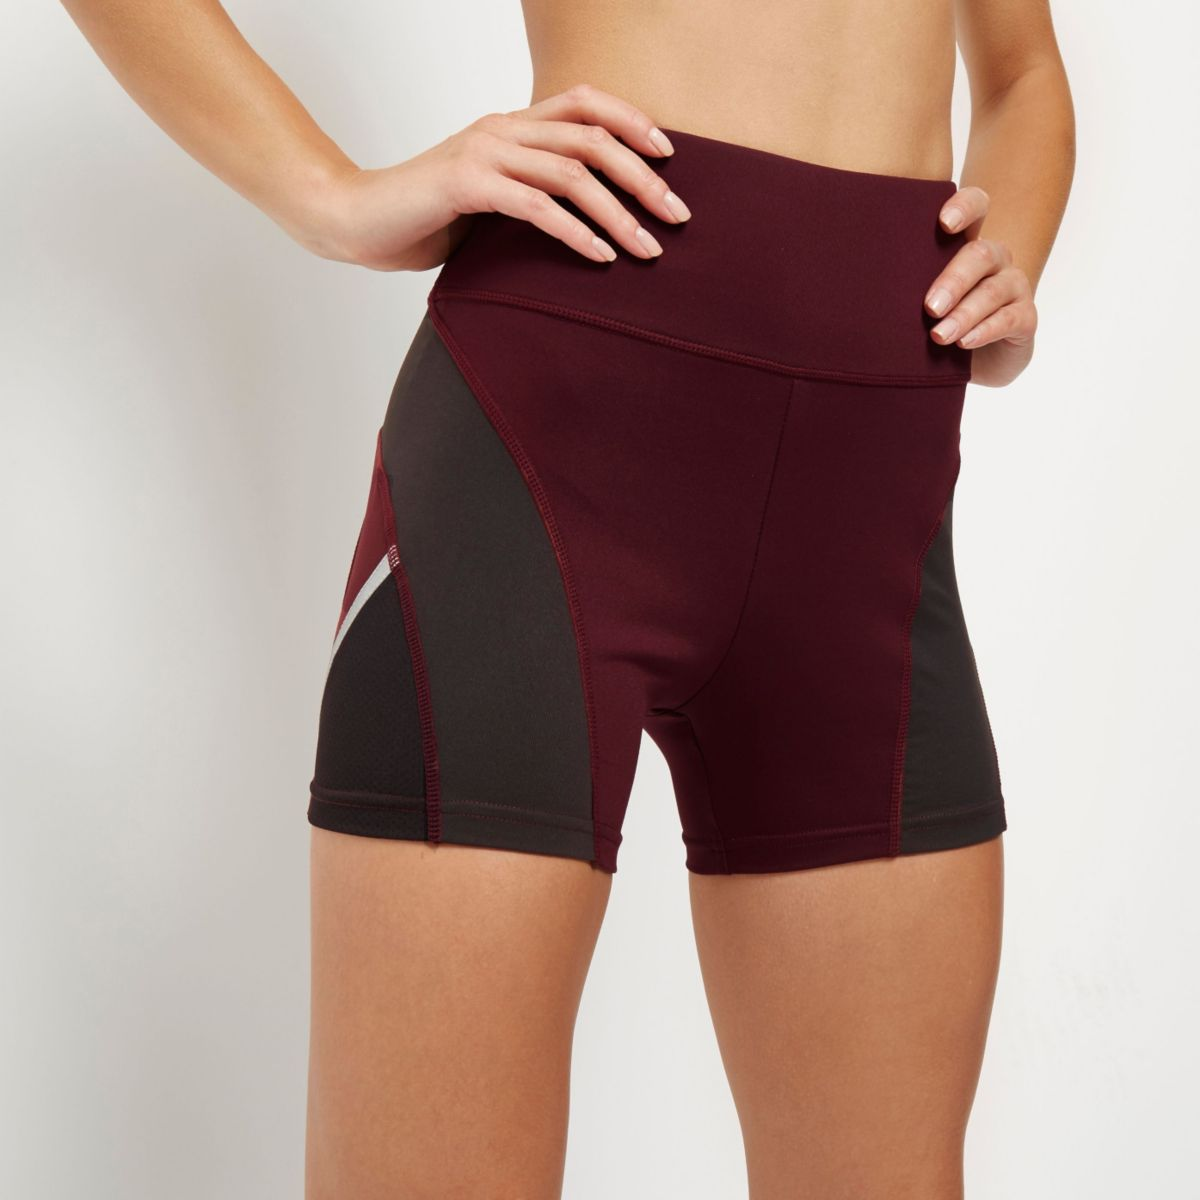 Free shipping BOTH ways on gym shorts womens clothing, from our vast selection of styles. Fast delivery, and 24/7/ real-person service with a smile. Click or call